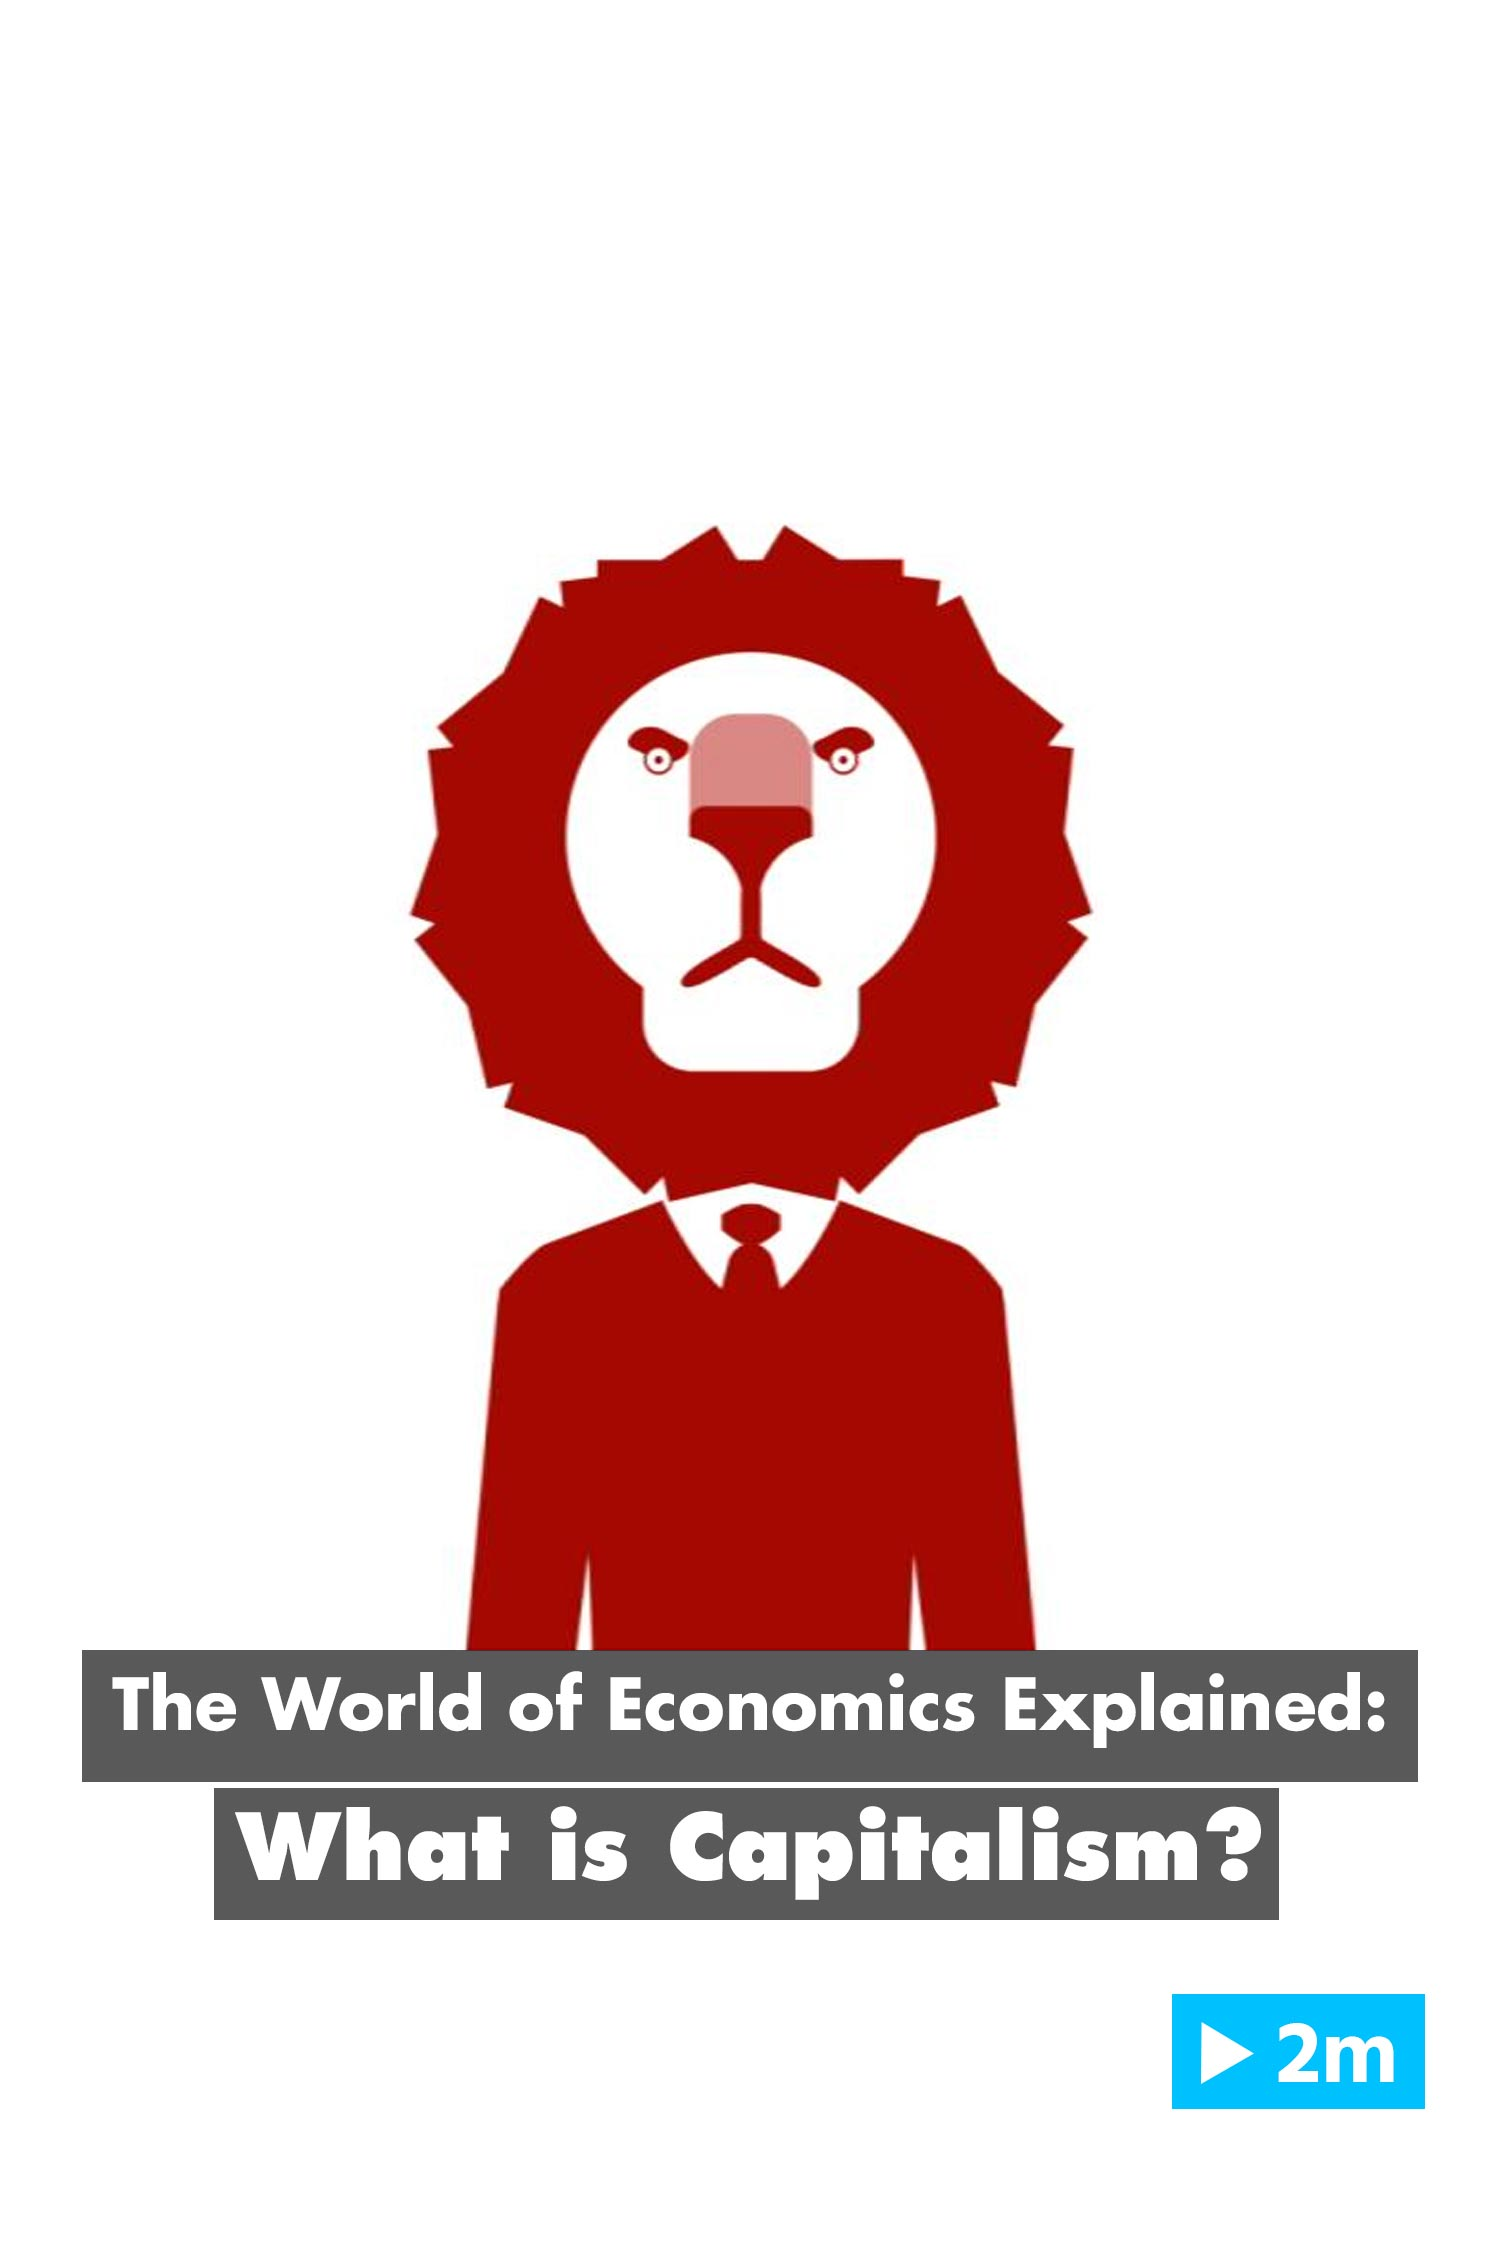 The World of Economics Explained: What is Capitalism?